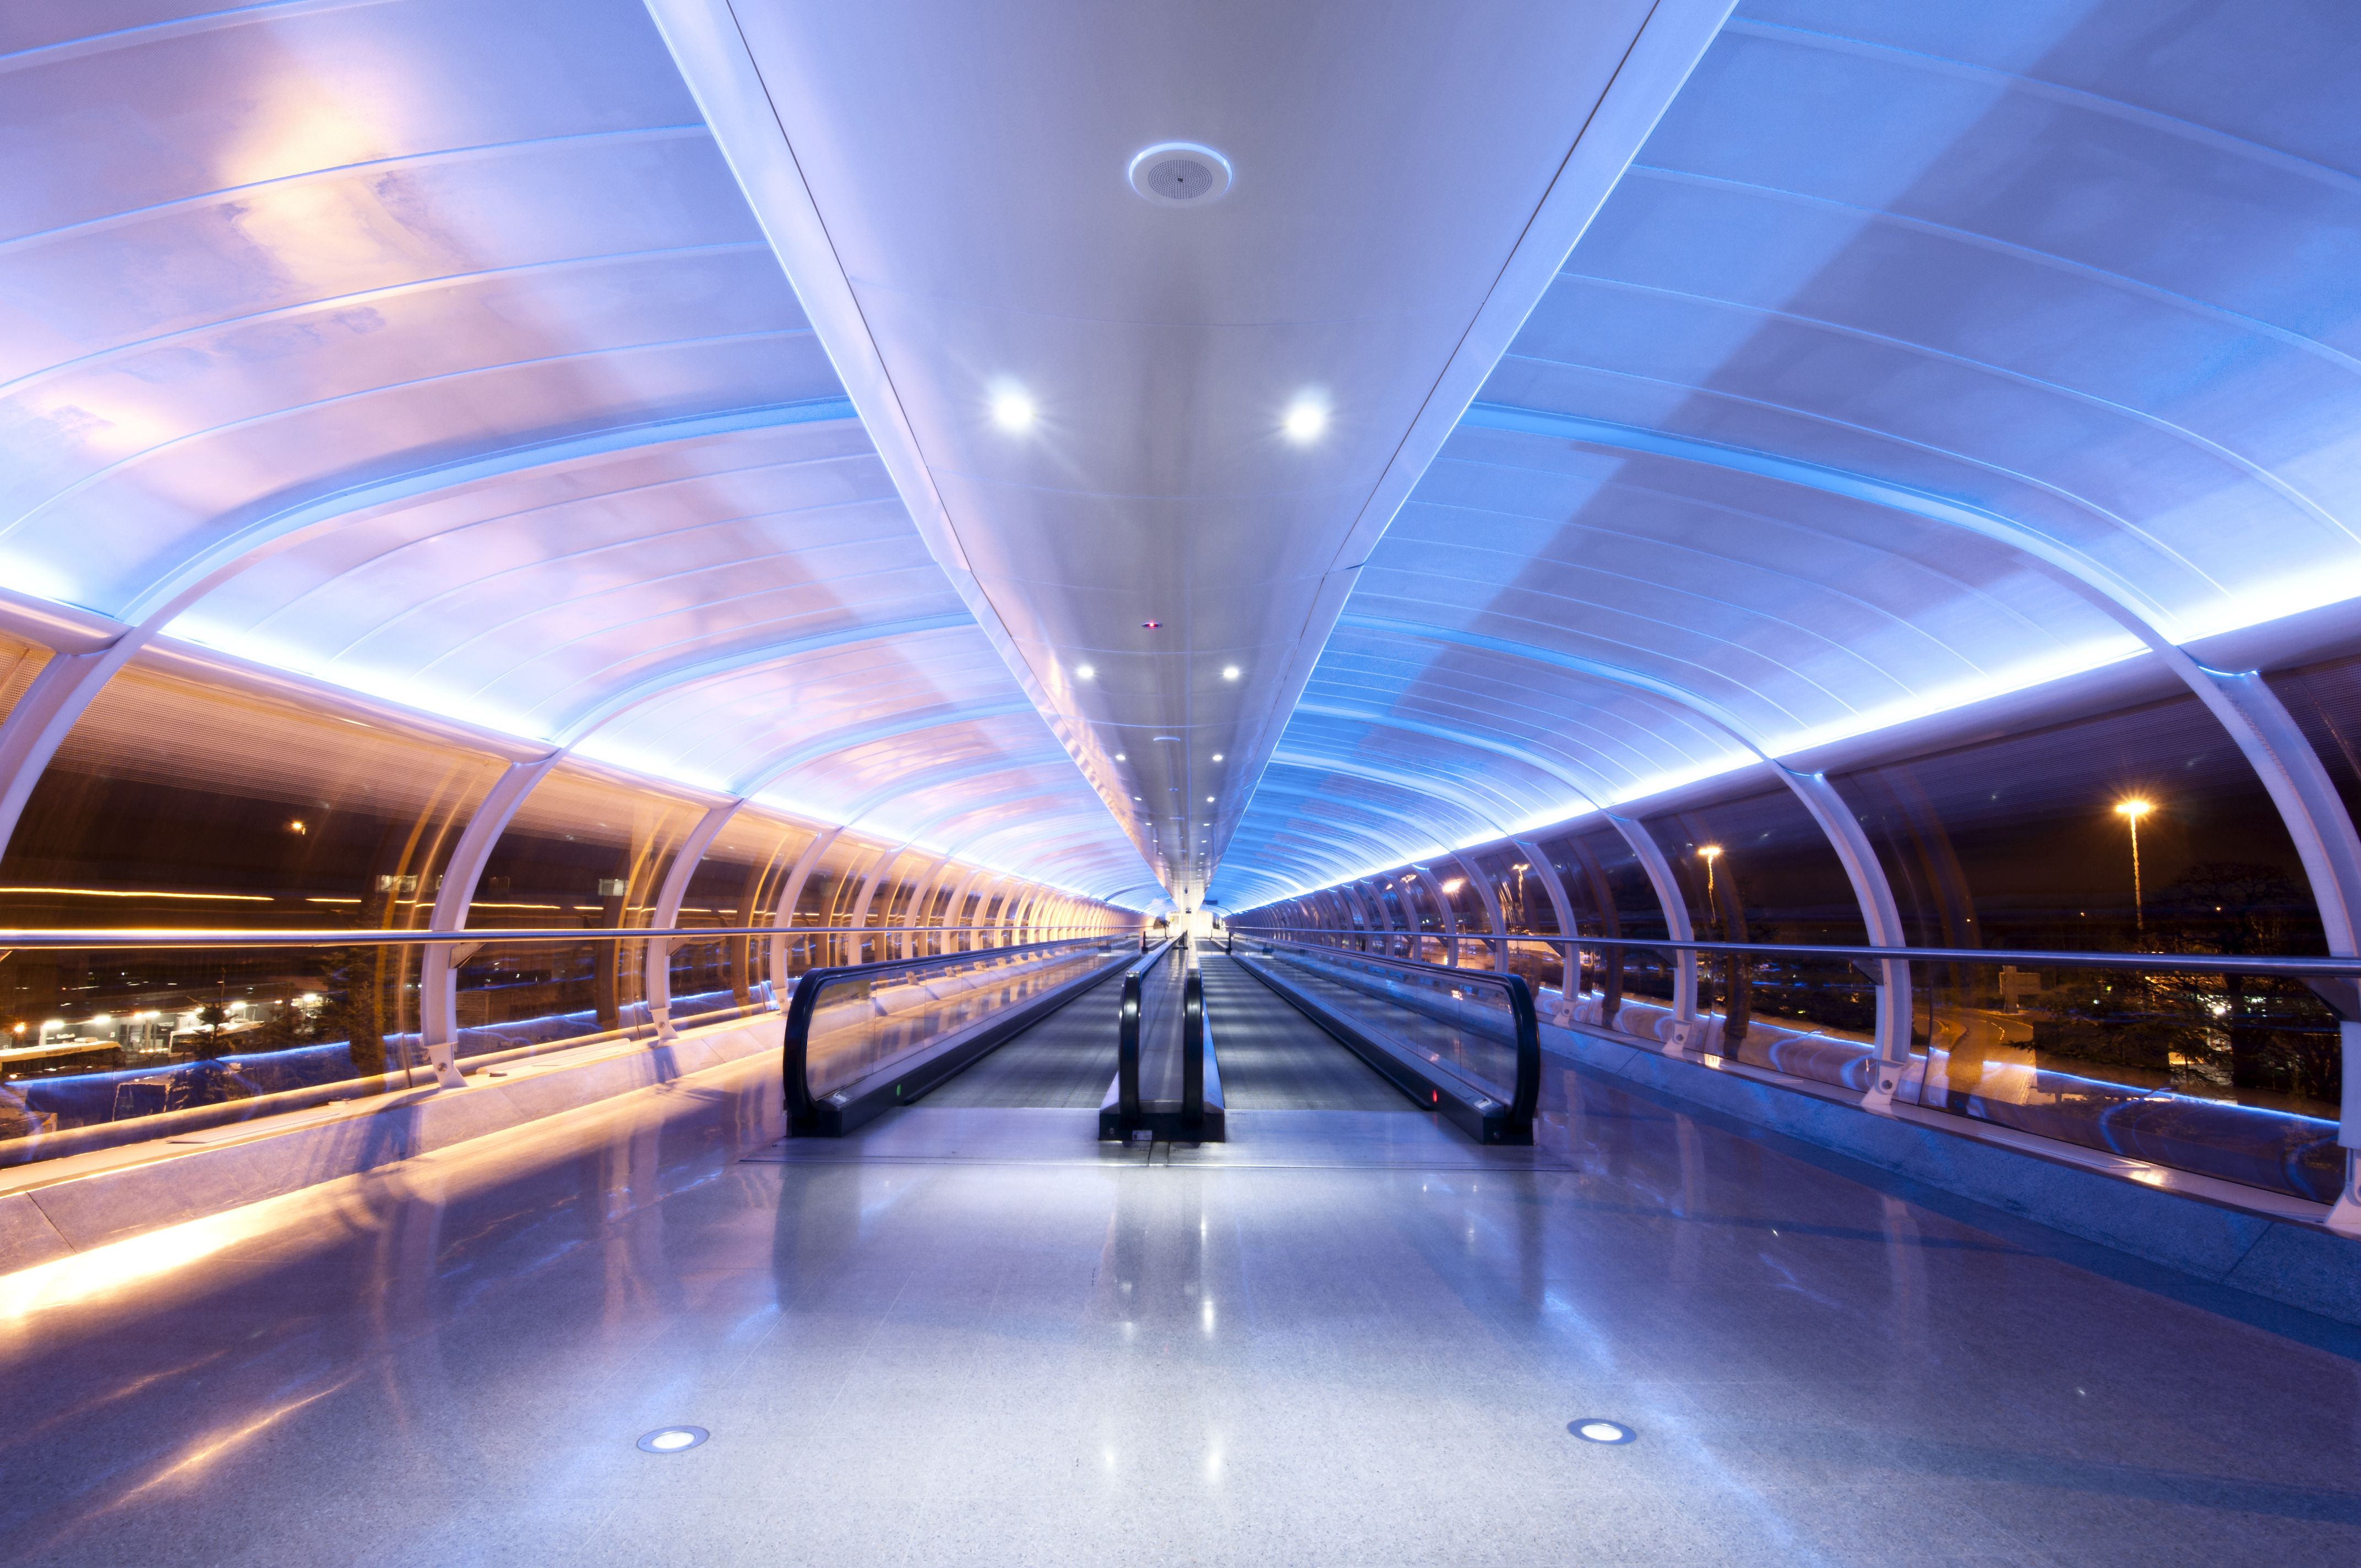 Neon lights guide the way Manchester Airport